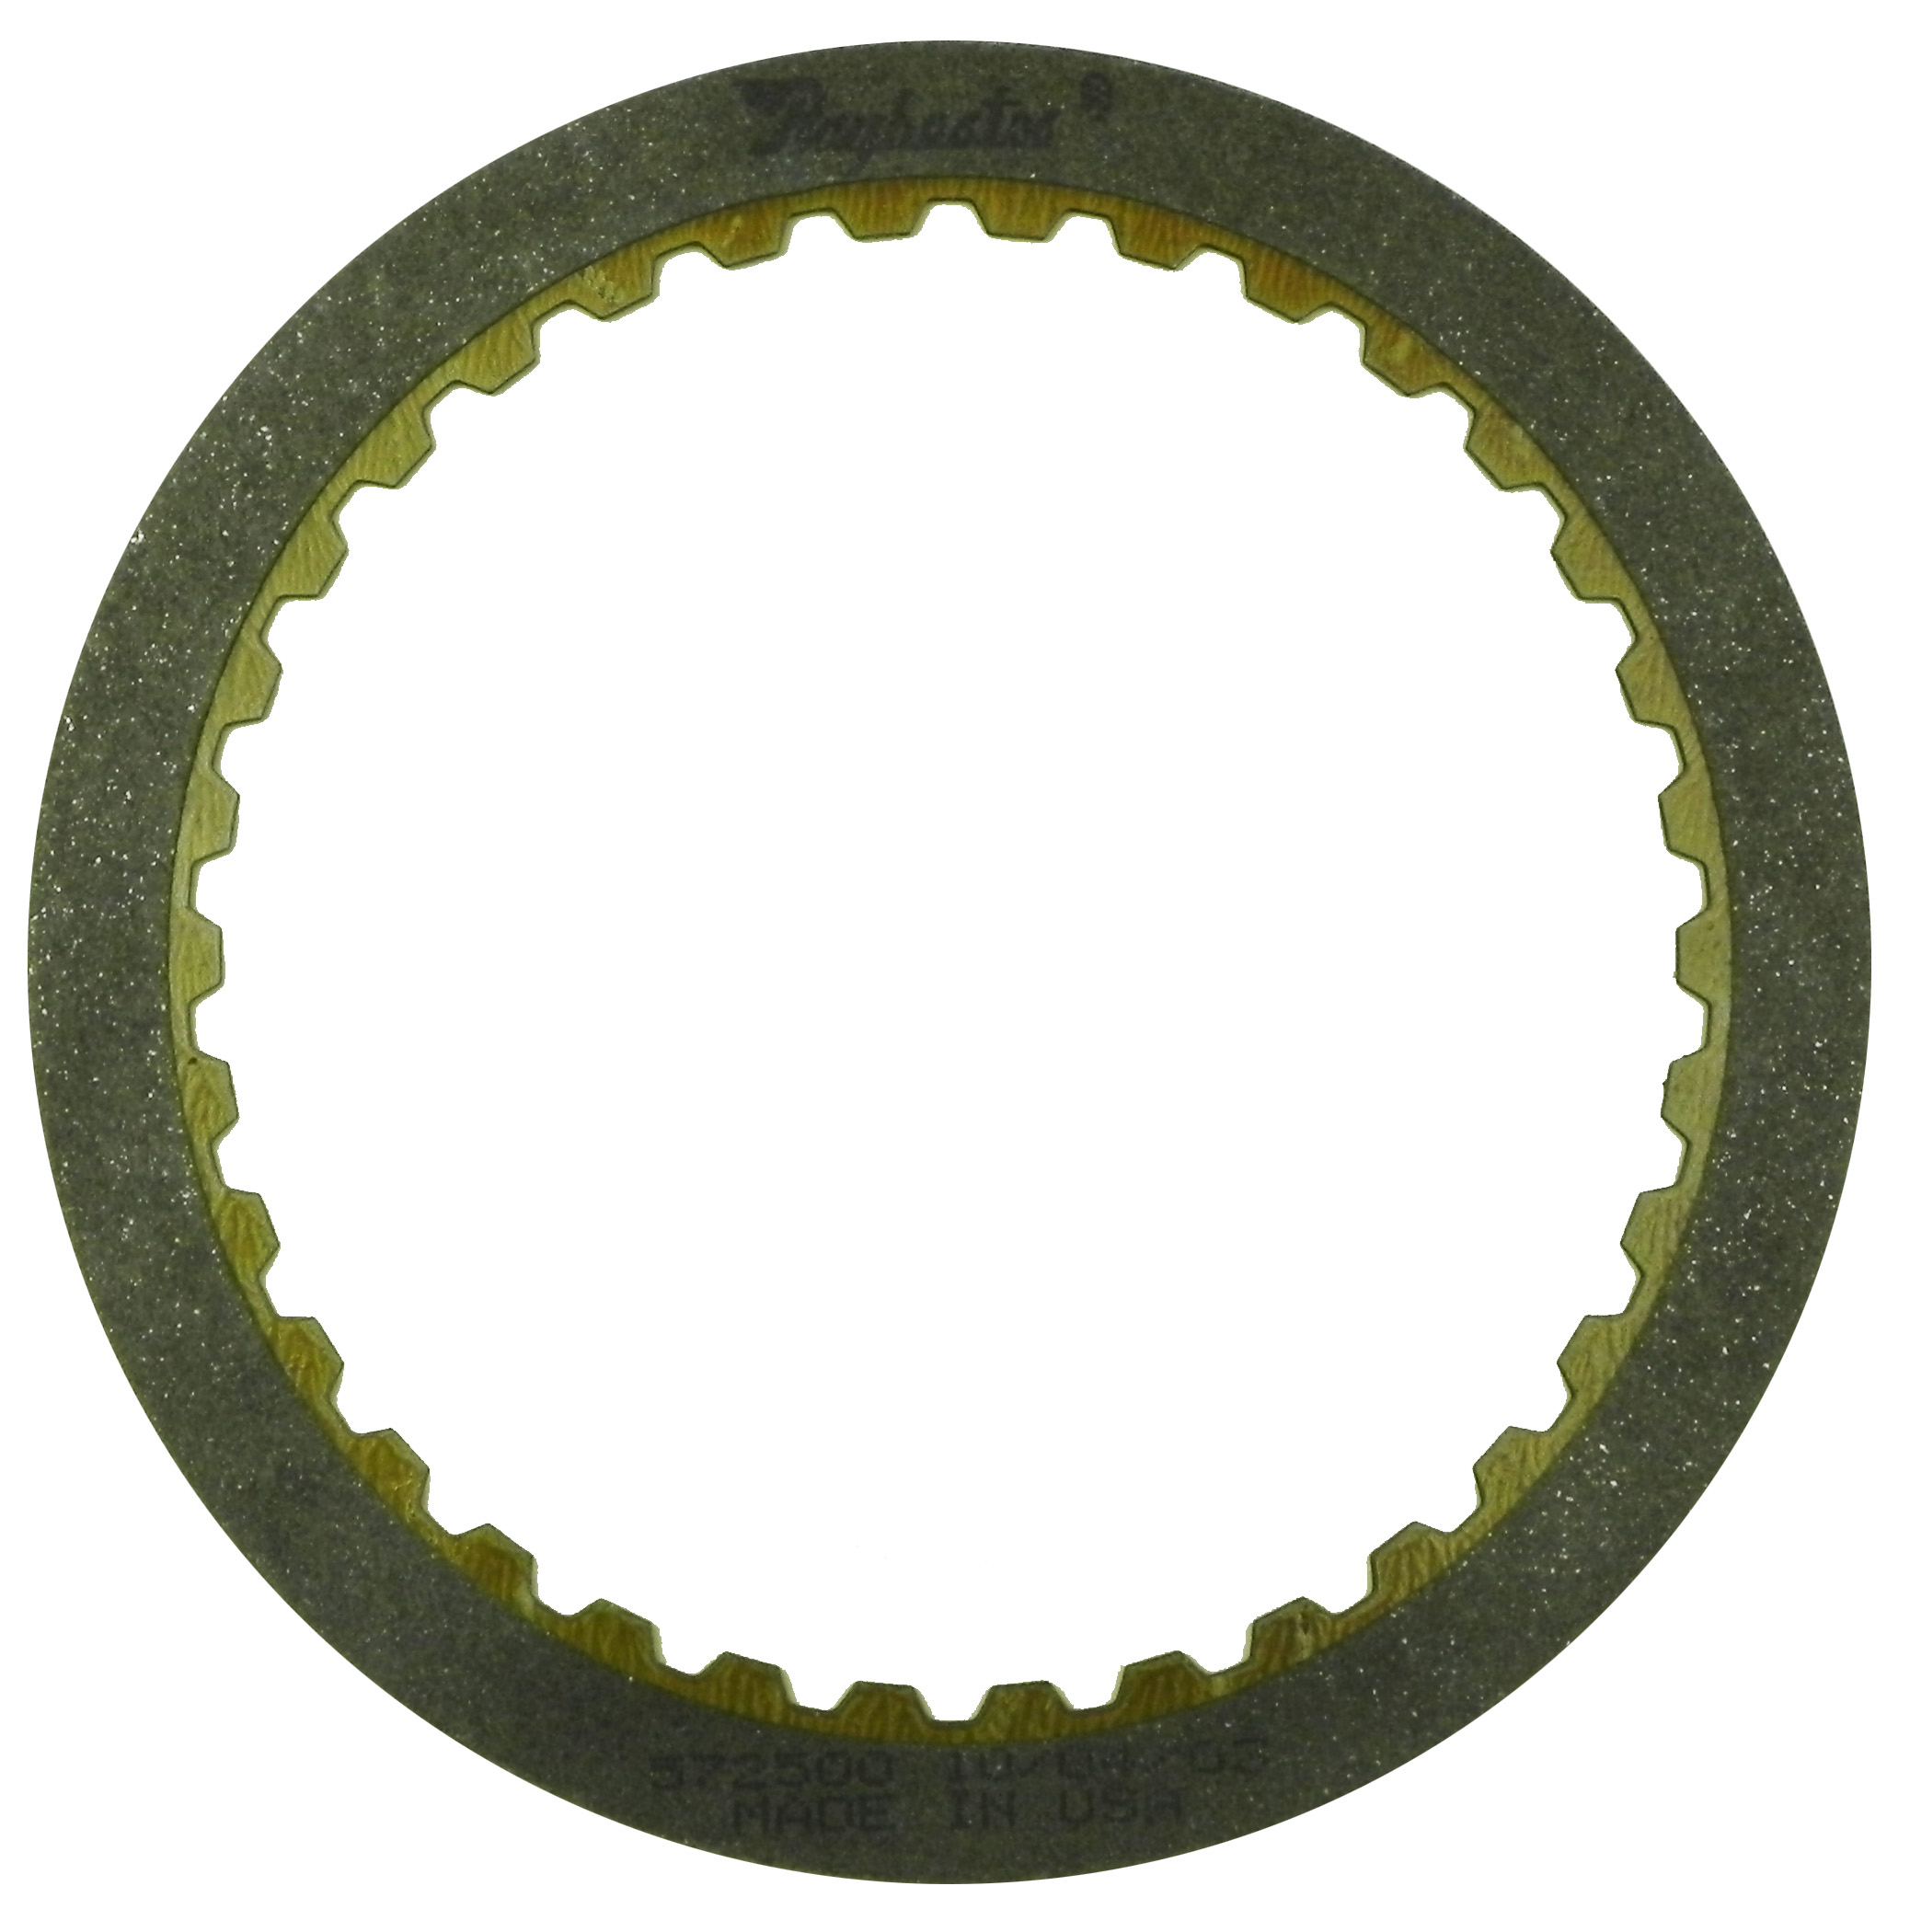 R572500 | 1989-1998 Friction Clutch Plate High Energy C2 Direct High Energy